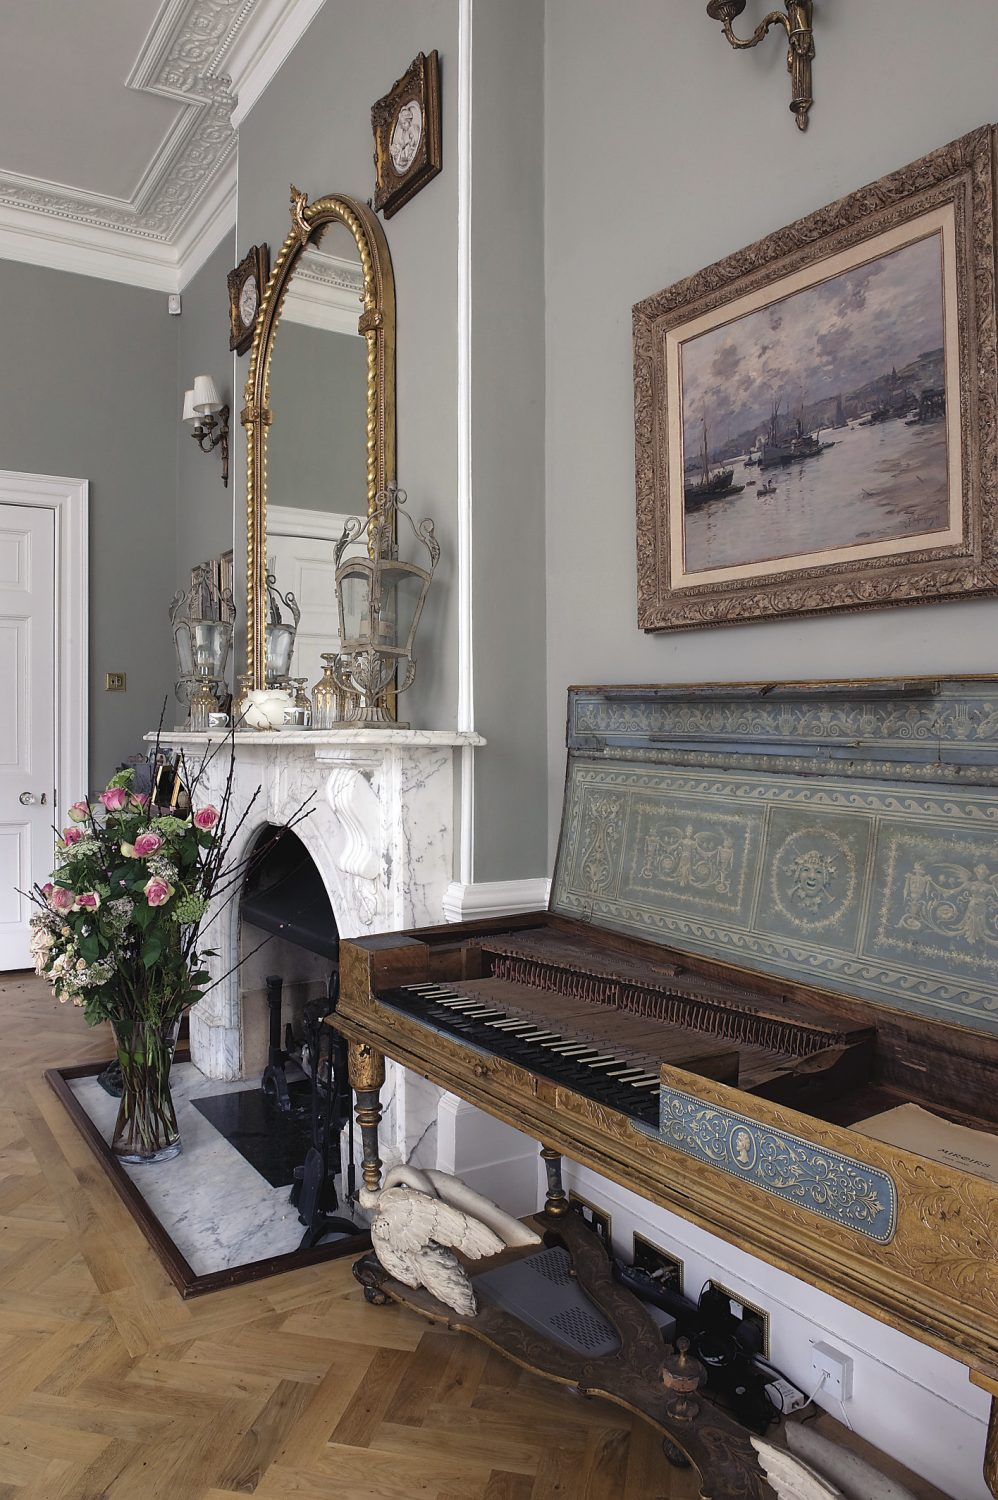 The exquisite eau de nil and gilded square piano, one of many in Theodora's collection of antique pianos, was bought from David Winston at the Period Piano Company